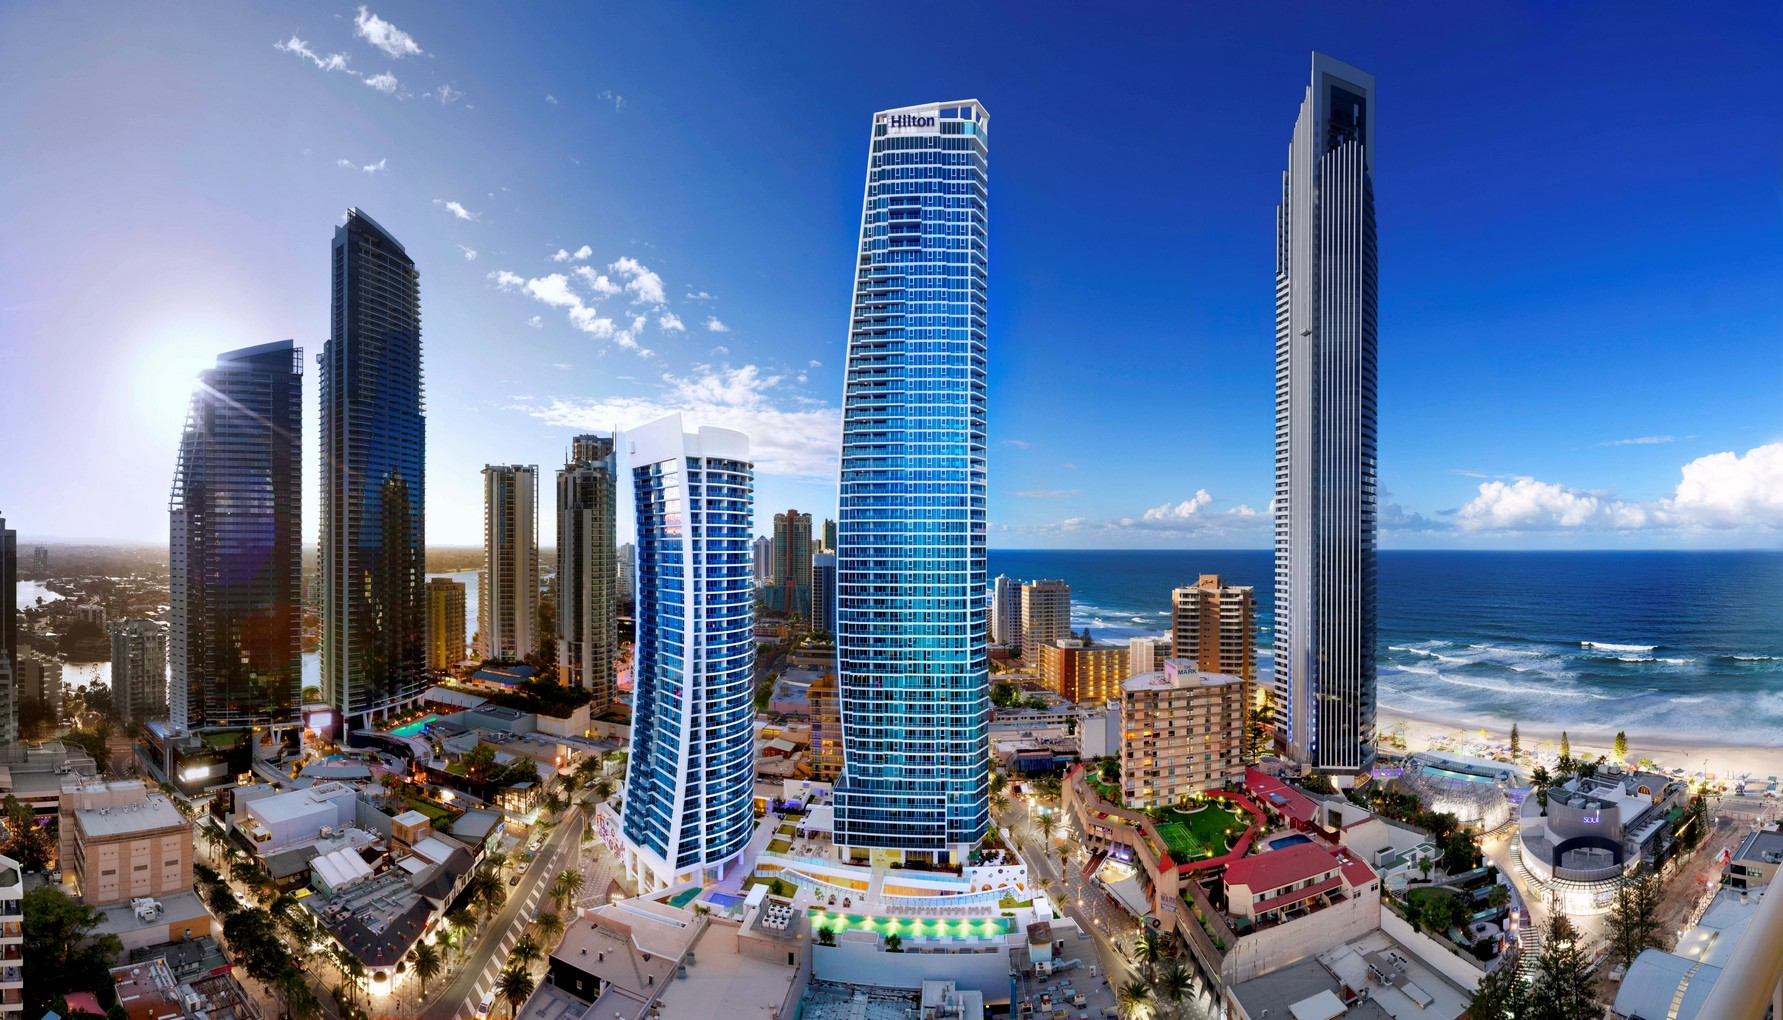 Hilton Surfers Paradise Hero June 2012 XL